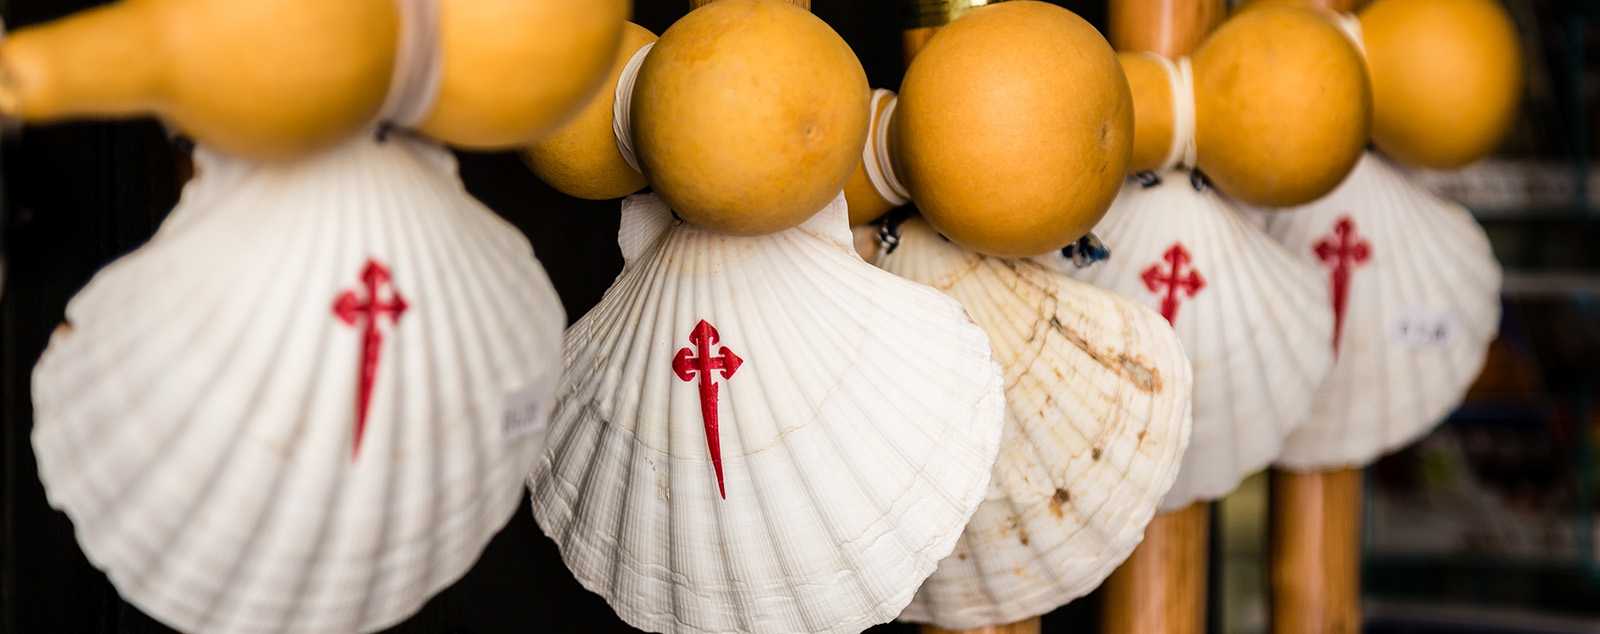 The traditional painted scallop shells of the camino attached to pilgrims walking sticks